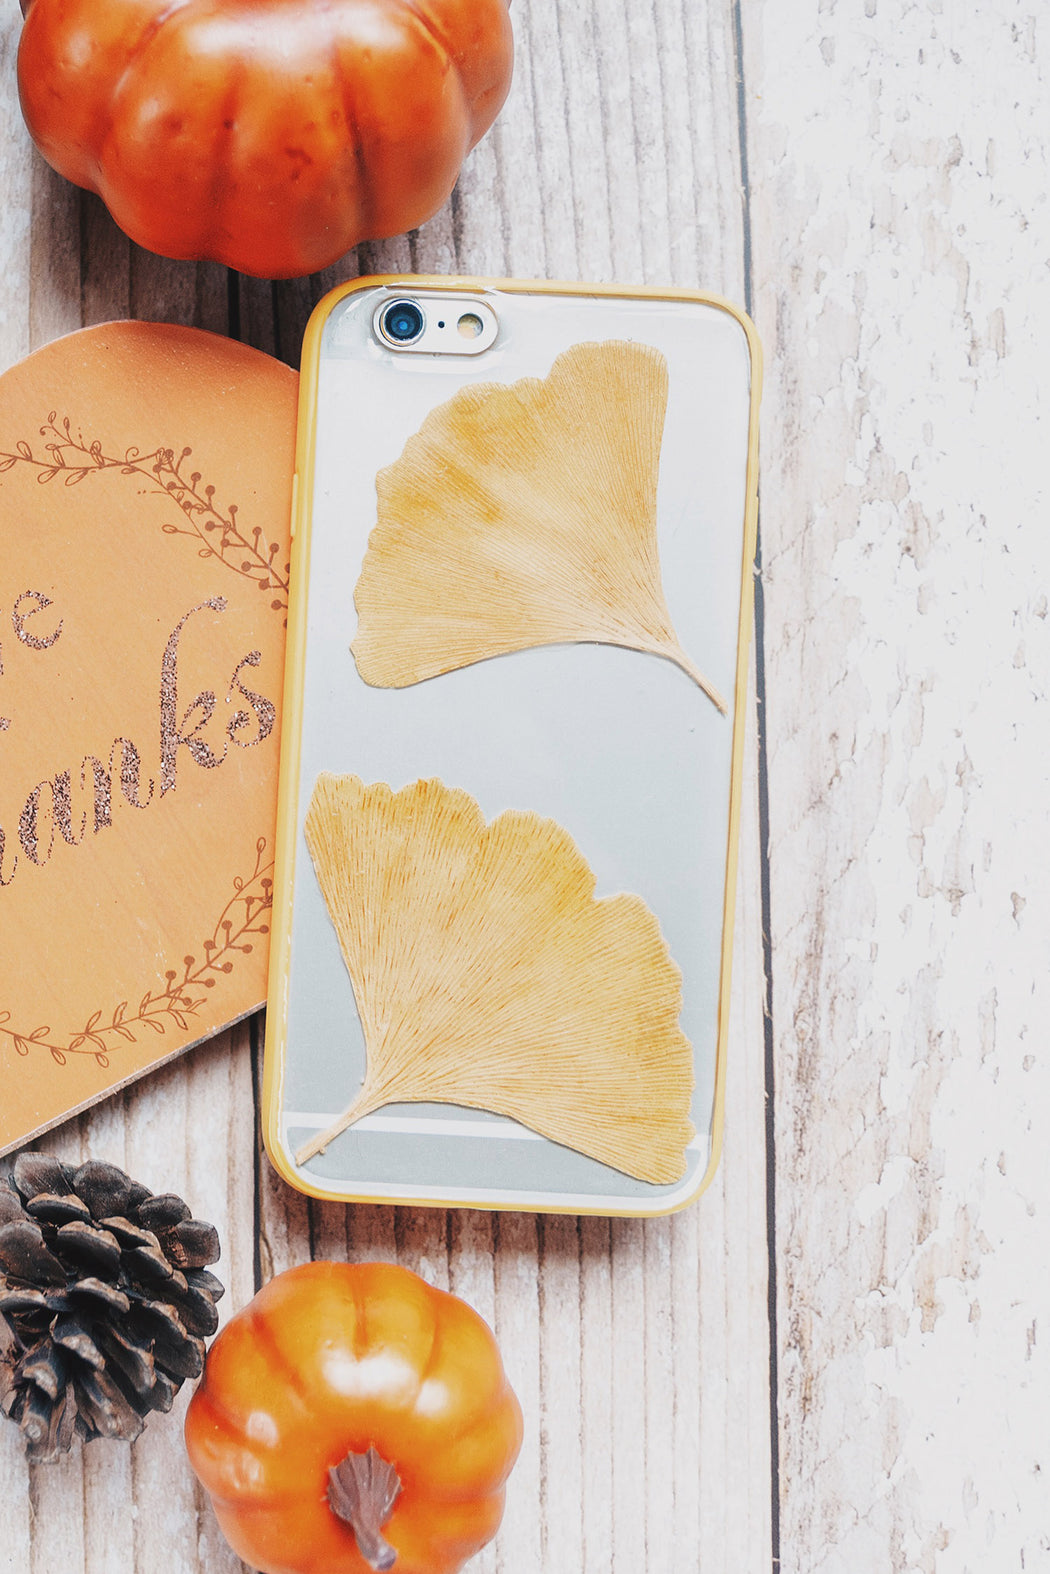 Ginger | Pressed Flower iPhone Bumper Case | iPhone 6/6s